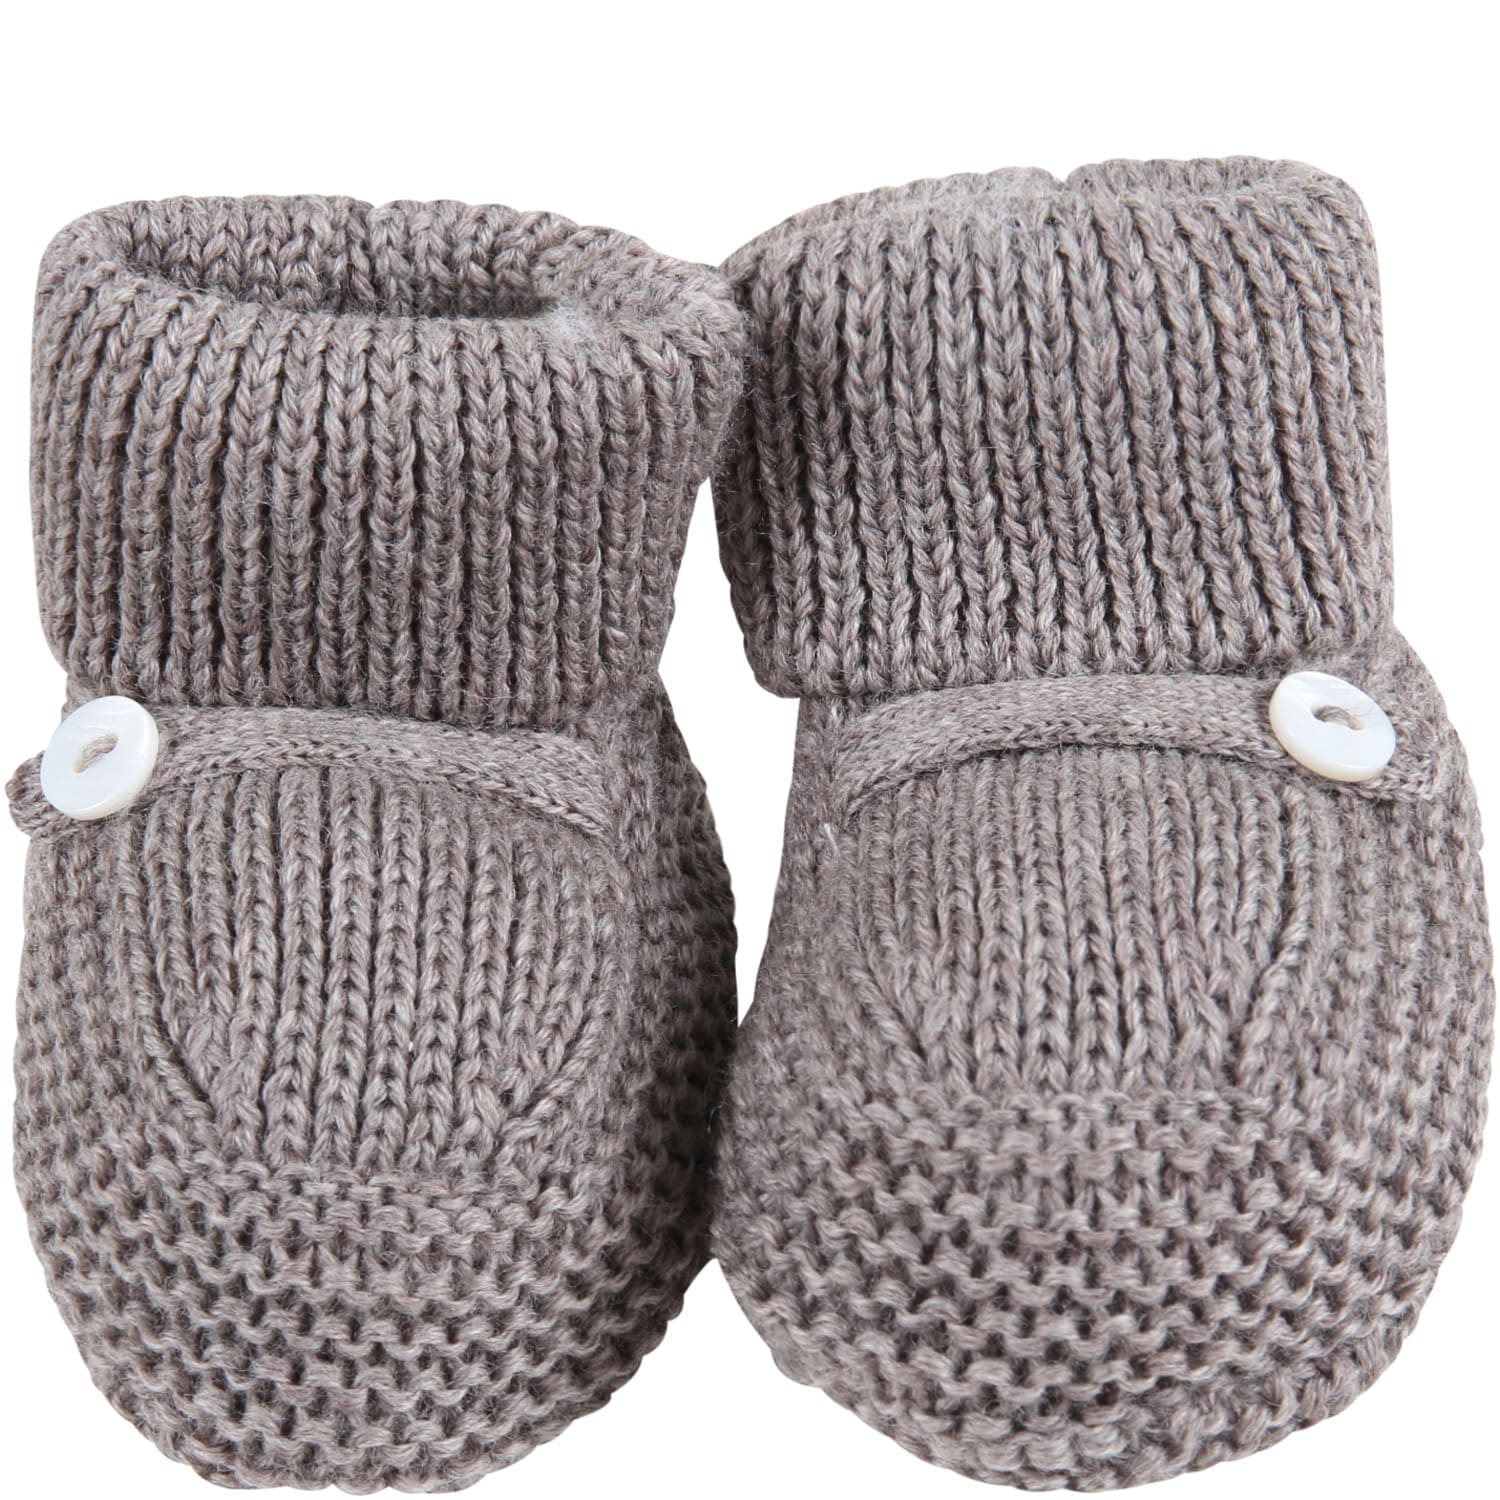 Beige Baby-bootee For Baby Boy